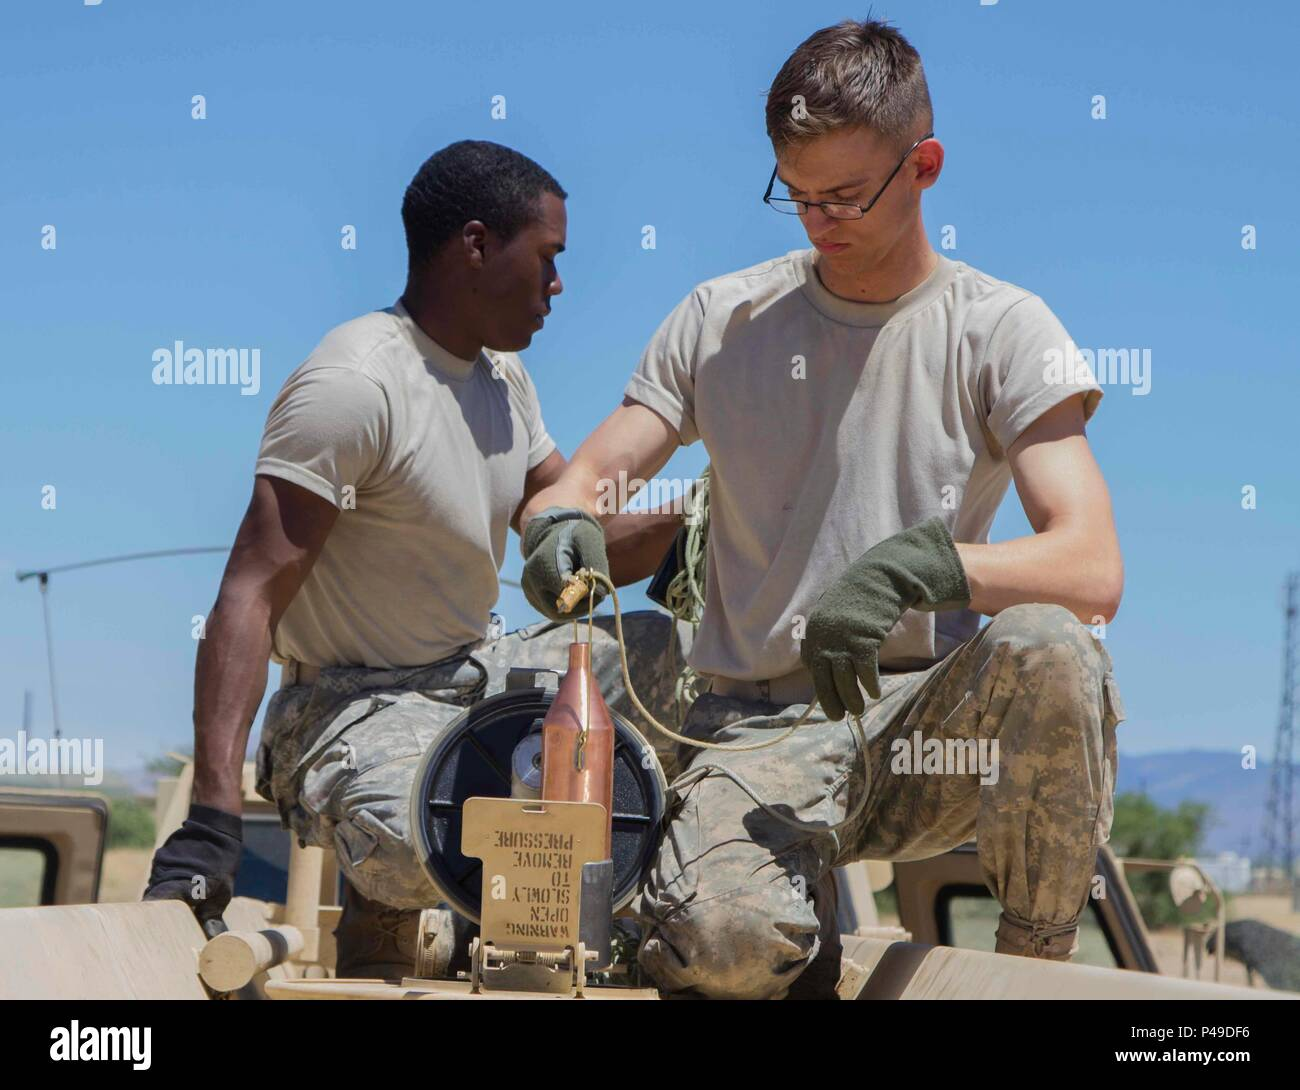 U.S. Army Reserve Pfc. Christian Jones and Spc. Mario Weatherby, Petroleum Supply Specialists,  383rd Quartermaster Company, Weldon Springs, Mo., take a fuel sample during the annual  Quartermaster Liquid Logistics Exercise, Fort Huachuca, Ariz., June 18, 2016. QLLEX is an annual  U.S. Army Reserve logistics training event that focuses on the technical training of Quartermaster  Soldiers for the storage, production and on-time distribution of water and petroleum in bulk amounts  equivalent to what they would work with in a combat environment. (Photo by U.S. Army Spc. James  Lefty Larimer, 367t Stock Photo